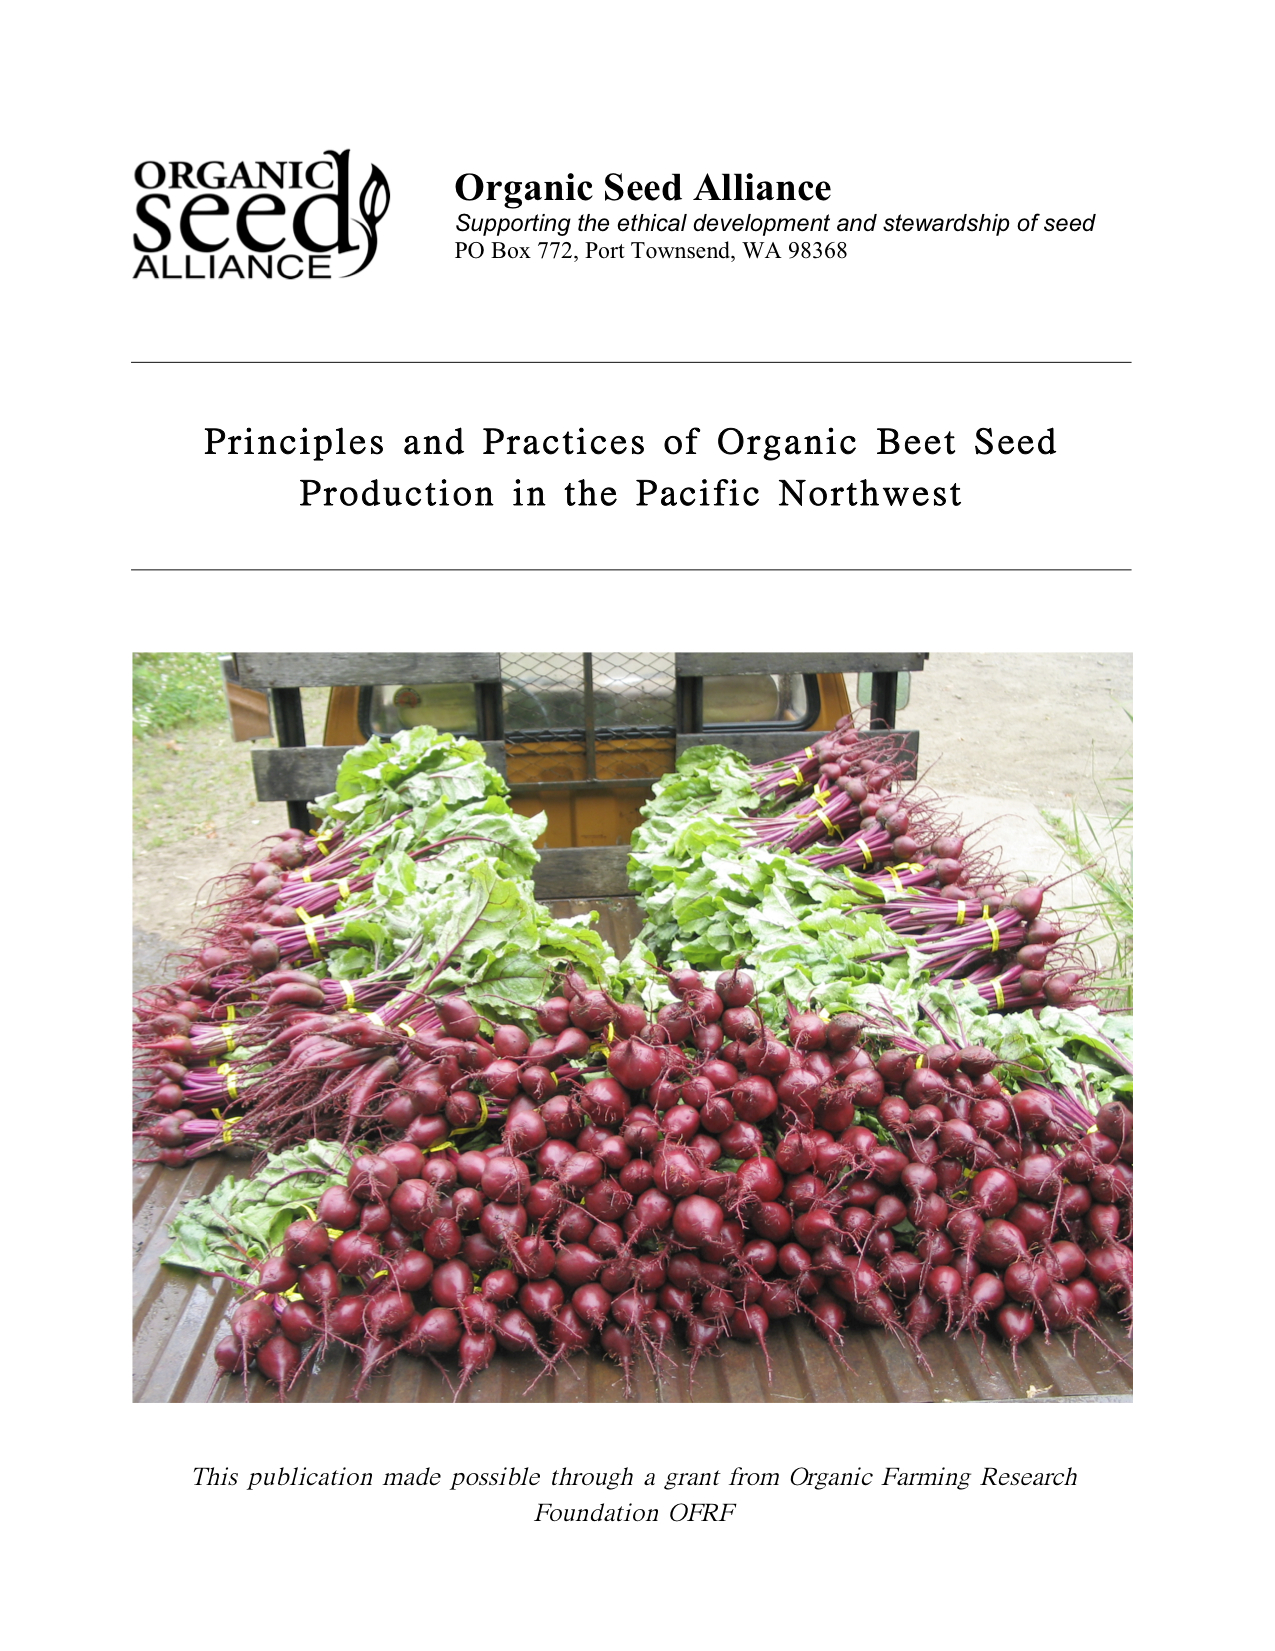 Principles And Practices Of Organic Beet Seed Production